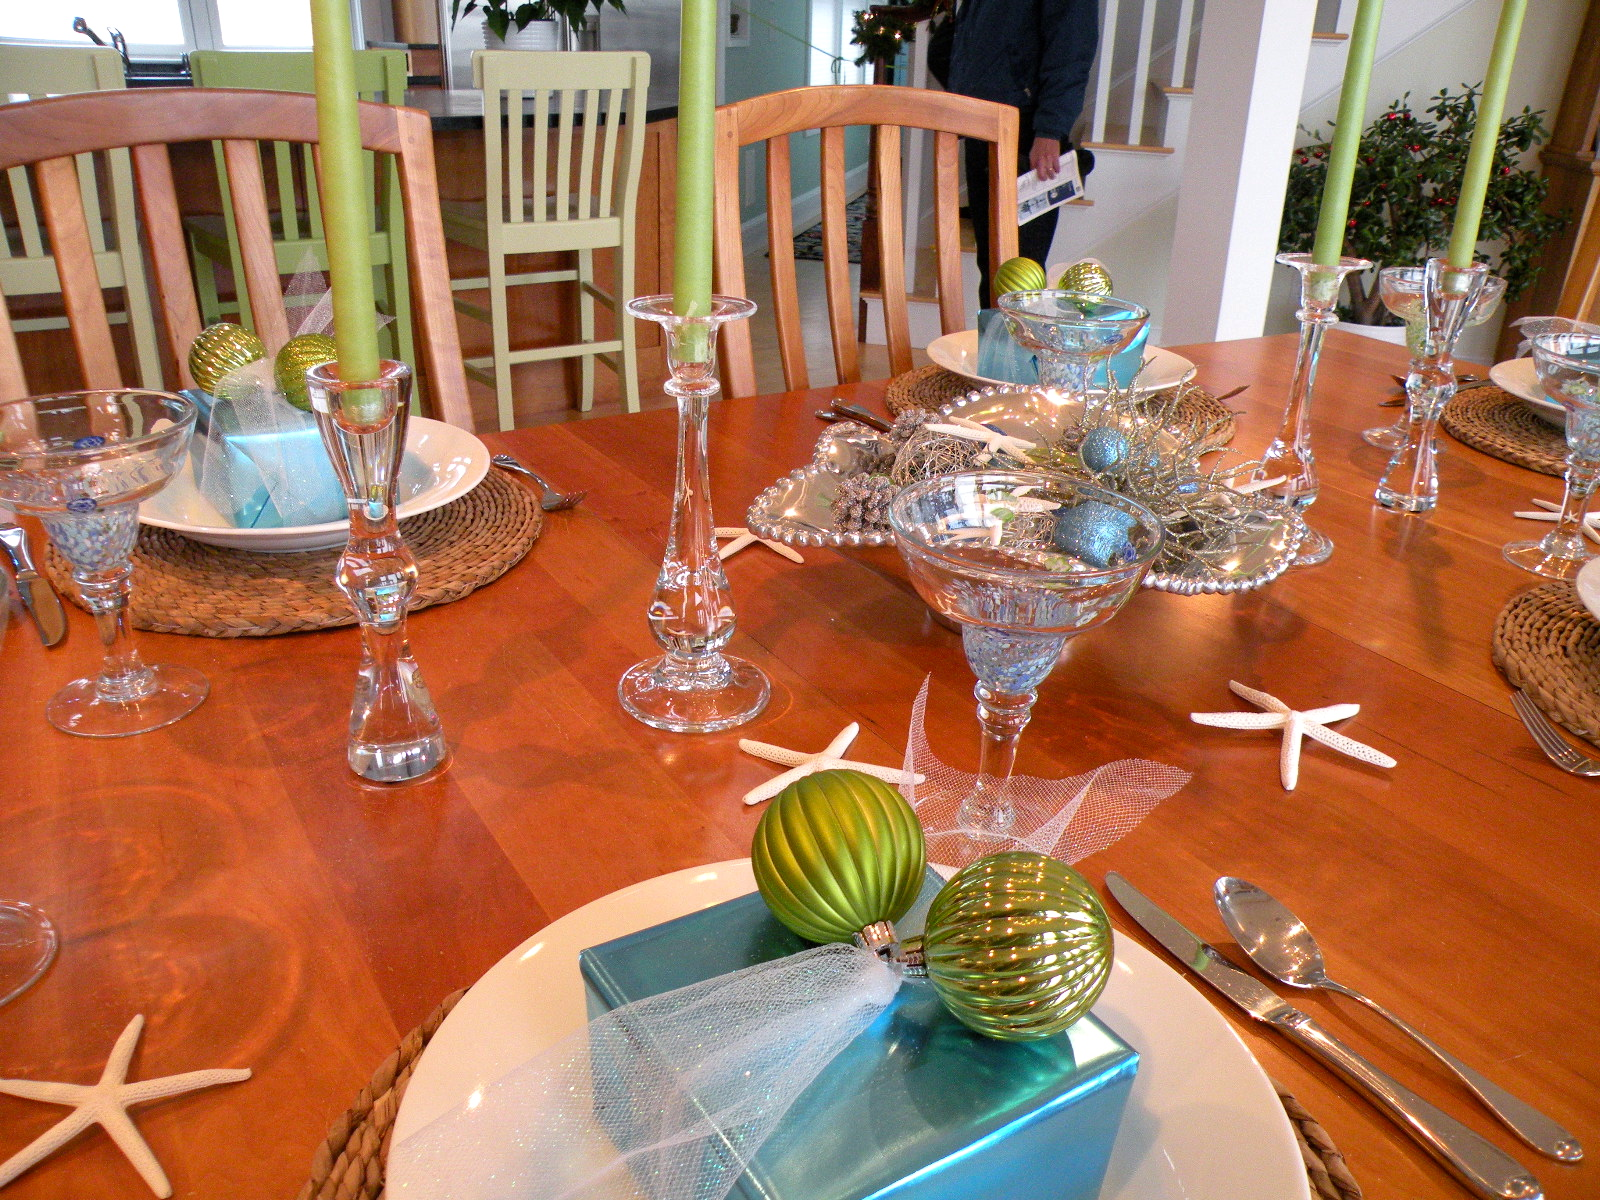 Coastal Christmas table scape with blue and green presents, ornaments and starfish